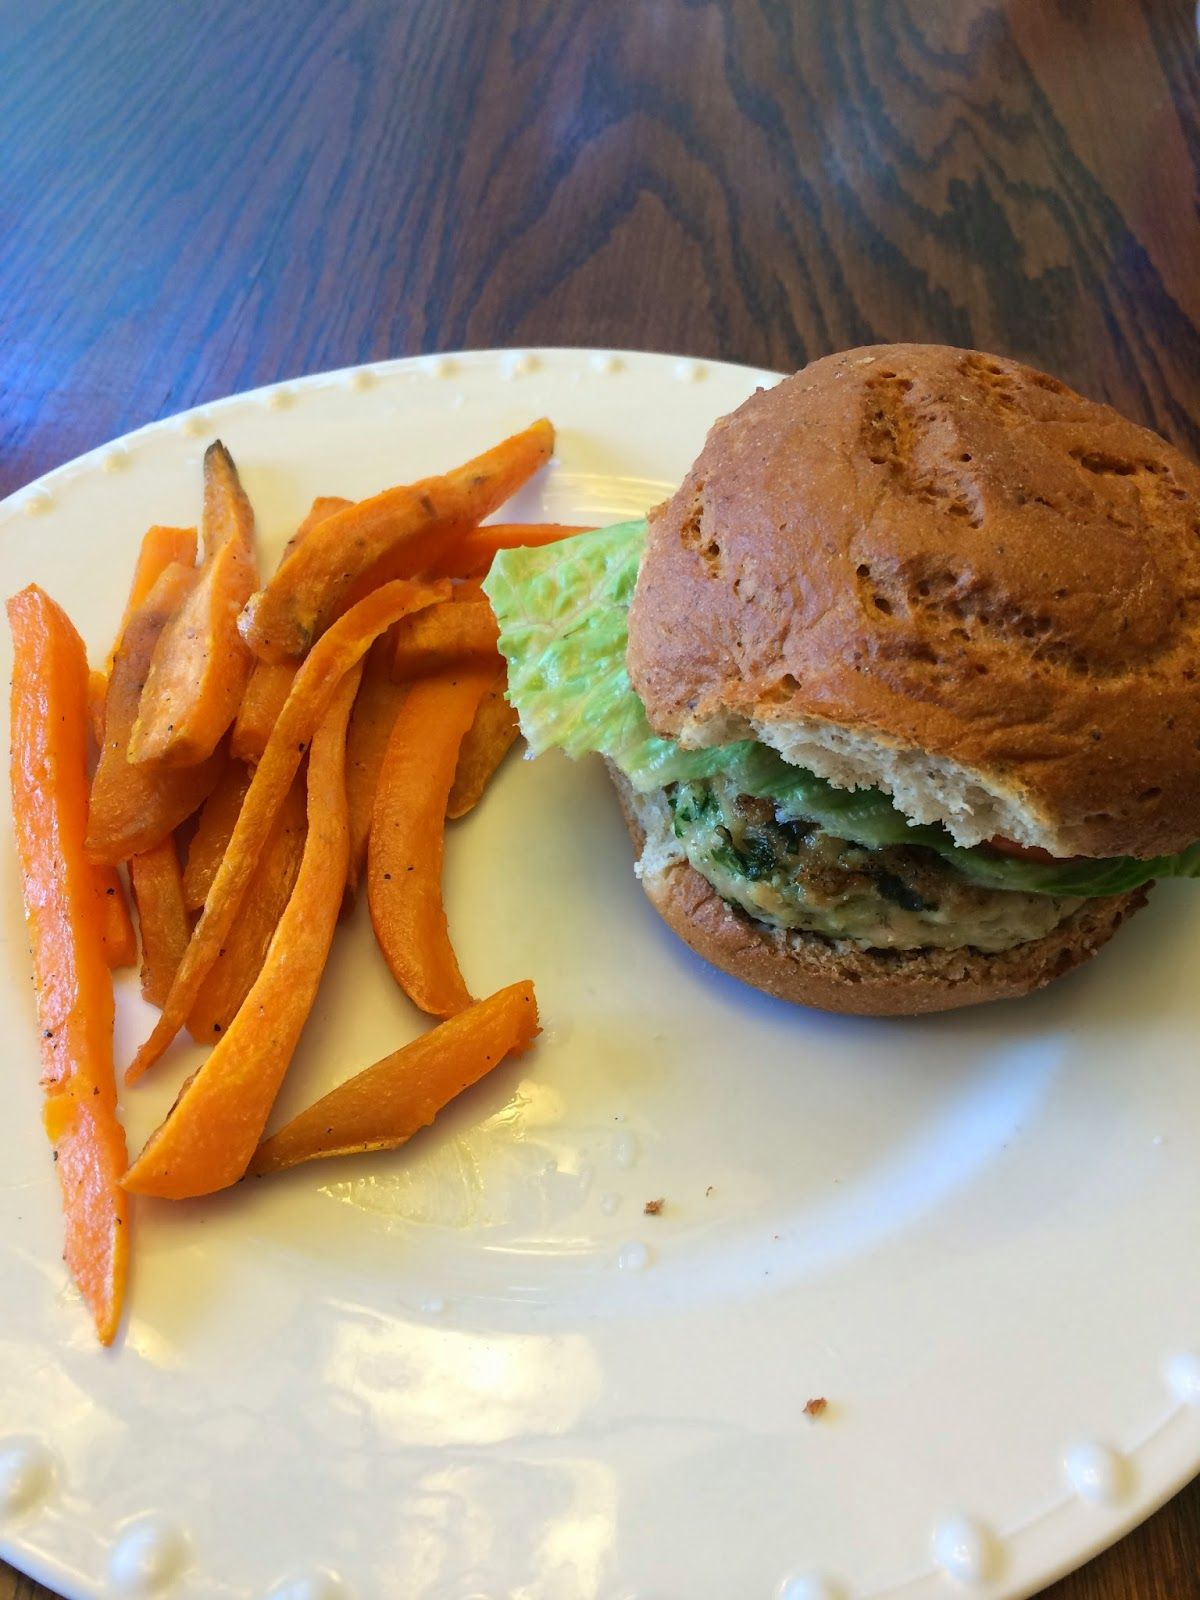 Forum on this topic: Turkey Burgers with Crispy Fries, turkey-burgers-with-crispy-fries/